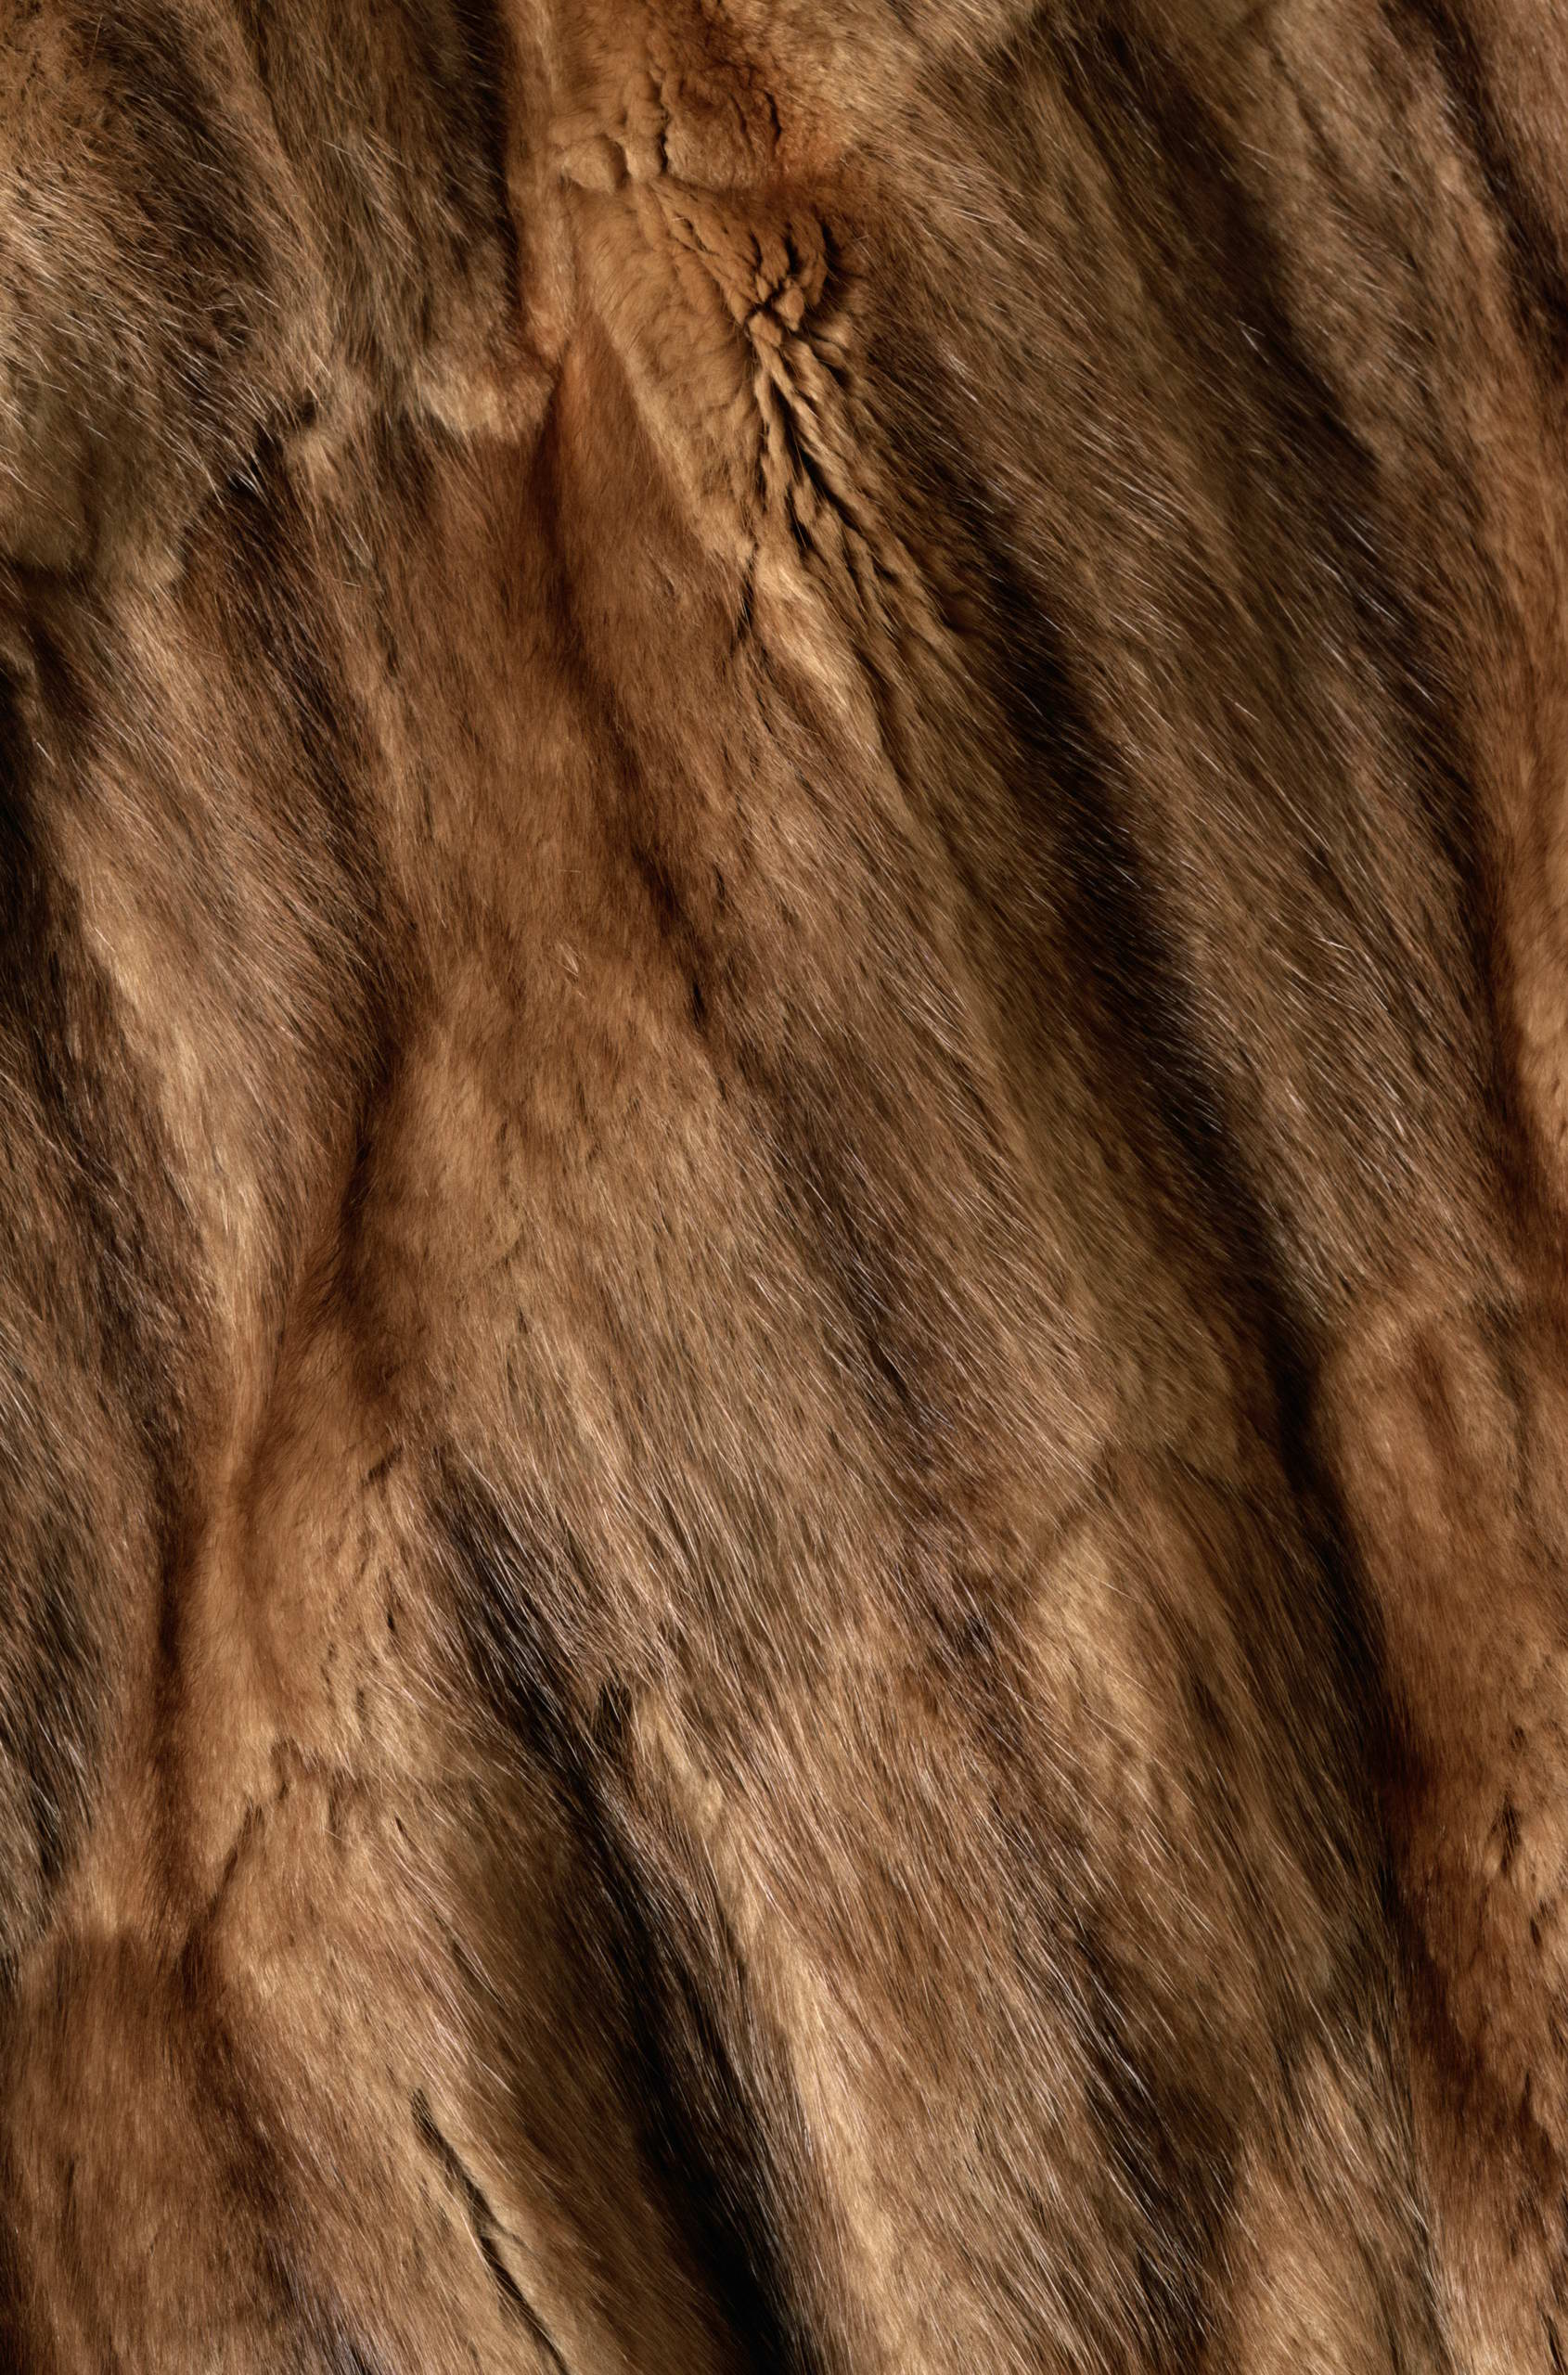 , texture fur, brown fur texture background, background